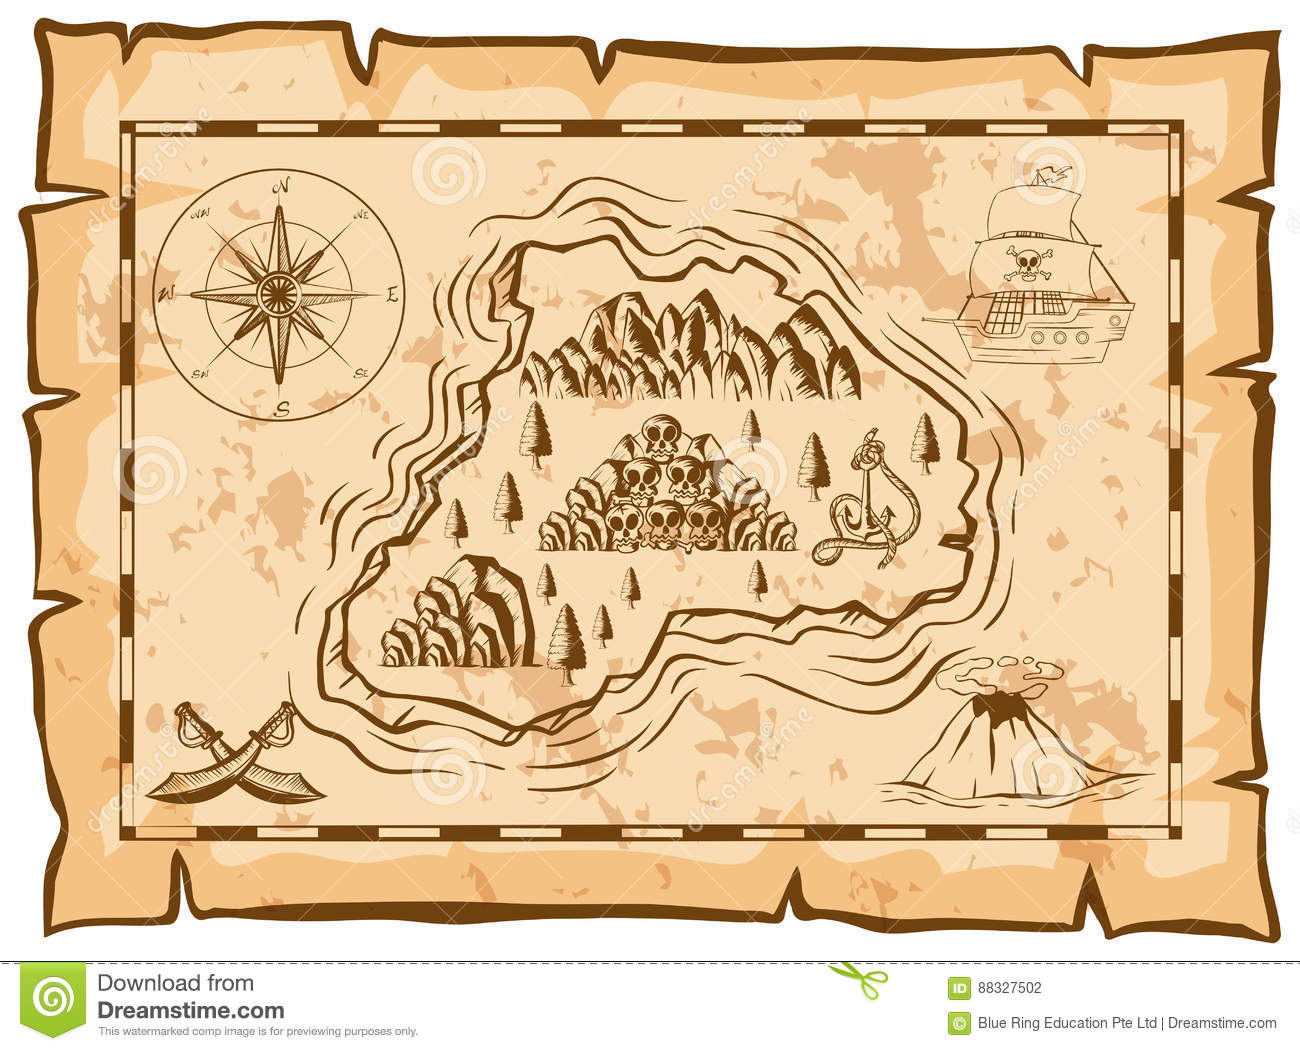 Treasure Map Of Dead Island Stock Vector - Illustration of drawing on